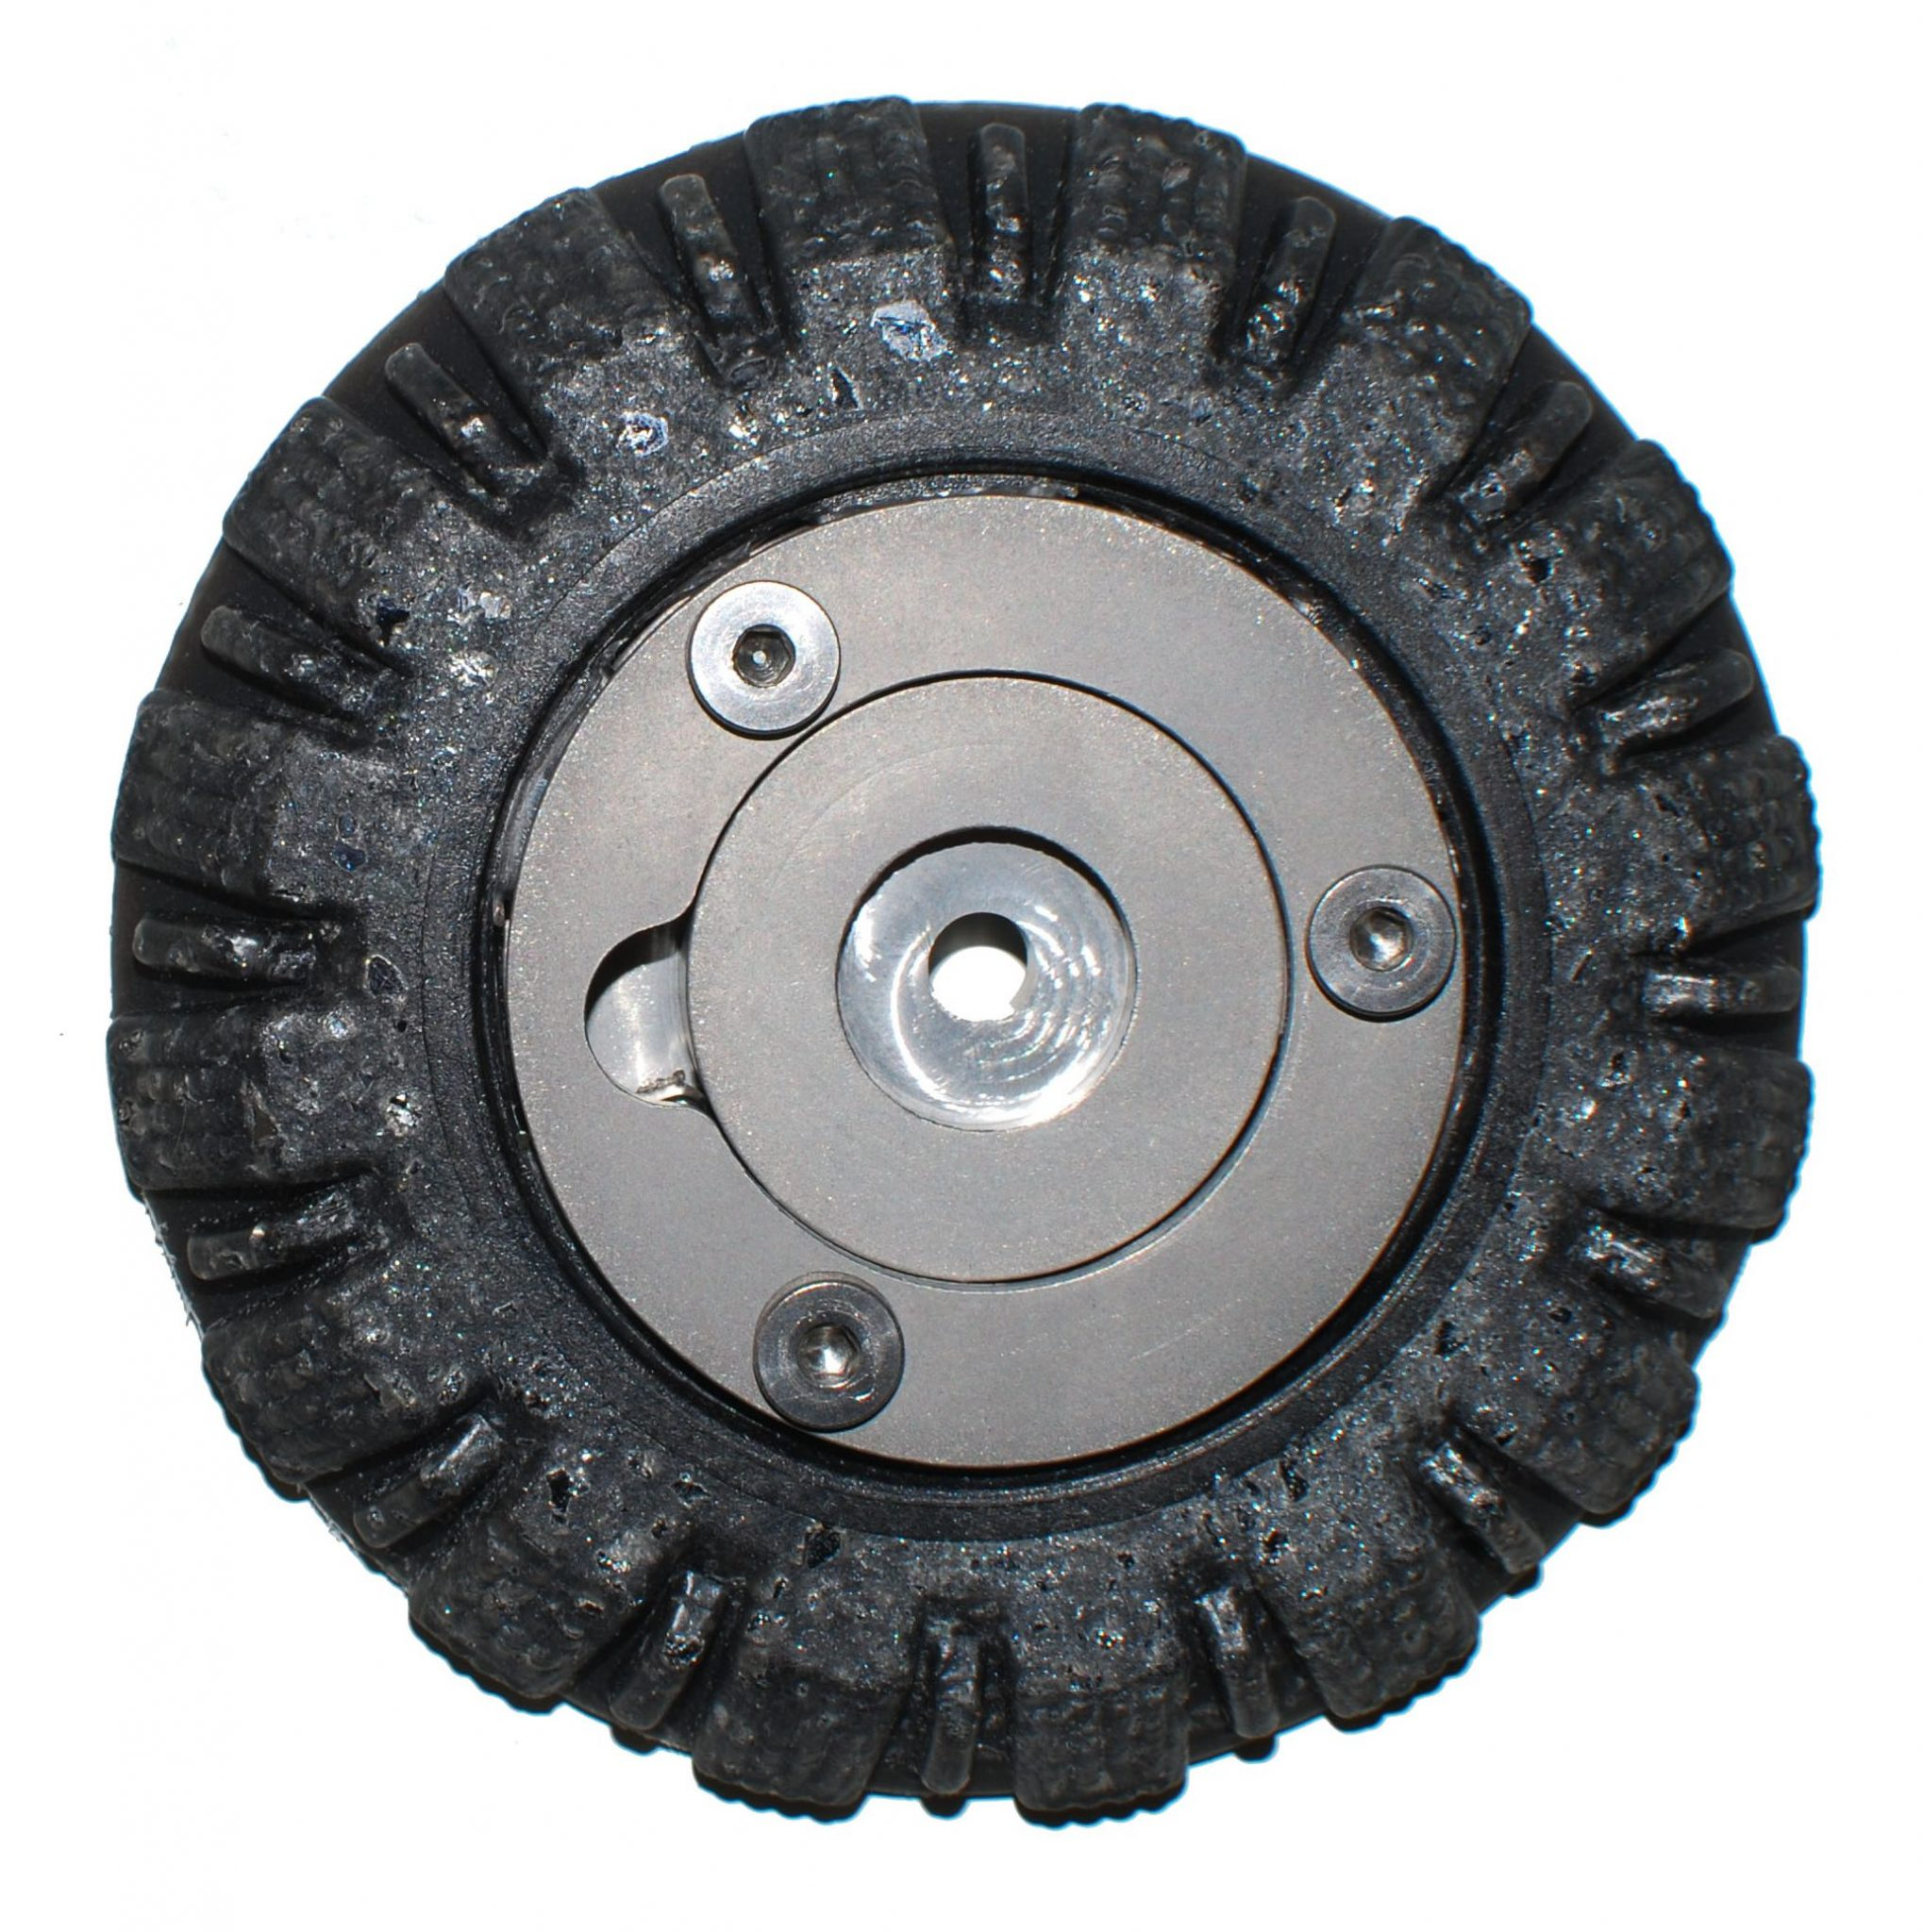 tg RST wheels buy online parts